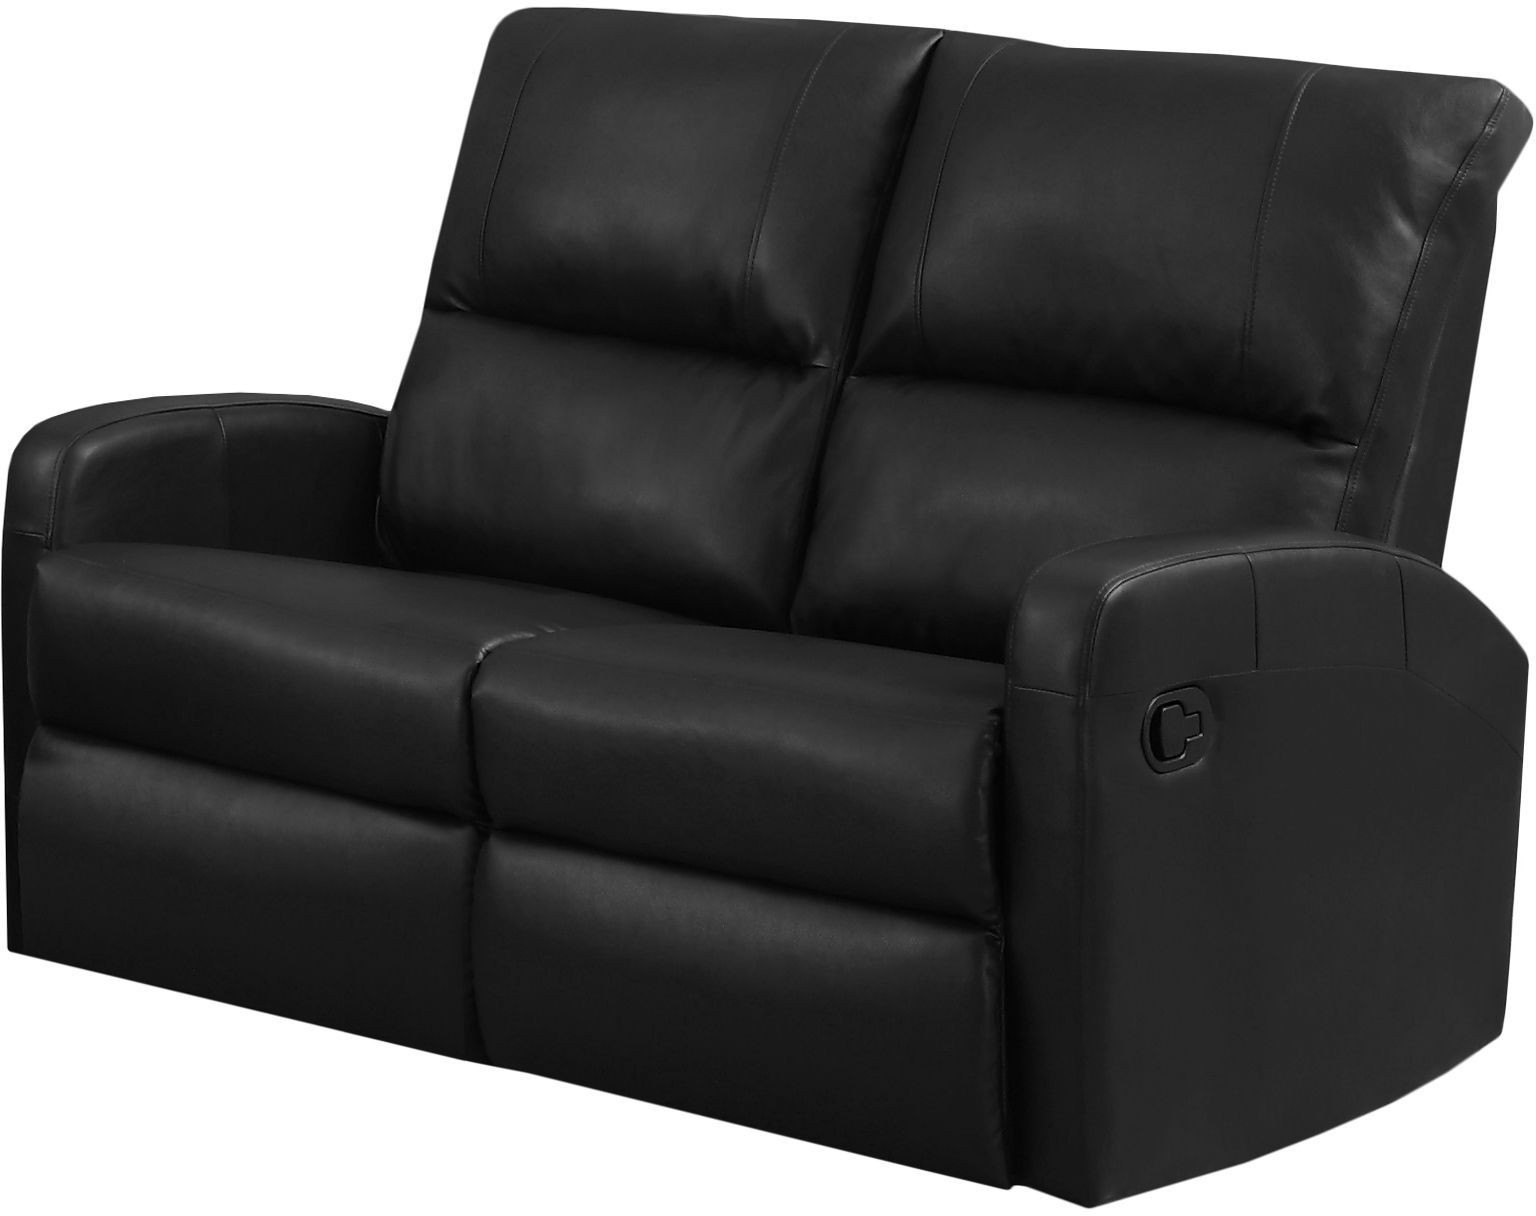 84bk 2 Black Bonded Leather Reclining Loveseat From Monarch Coleman Furniture